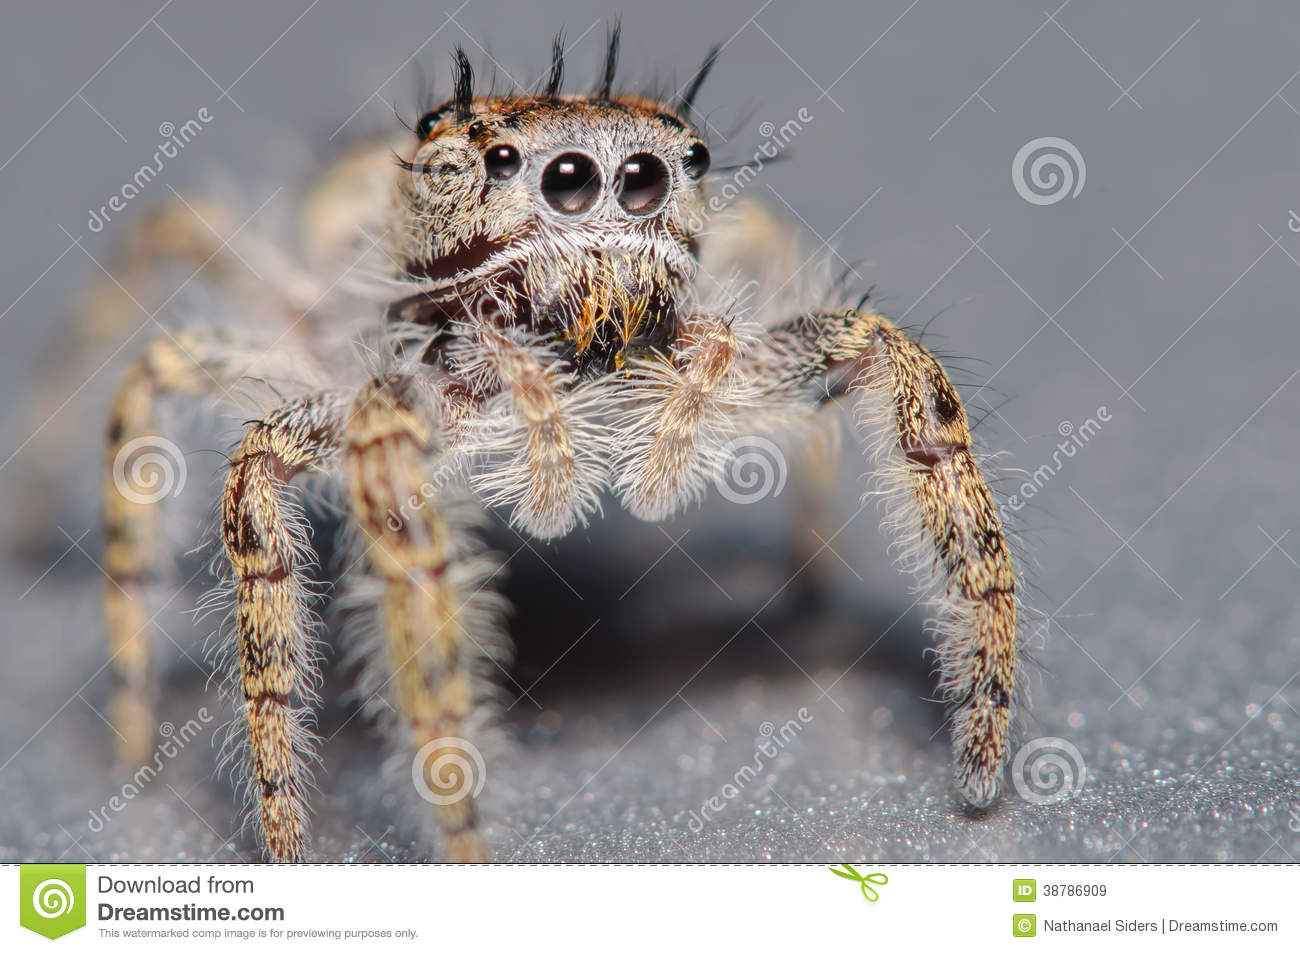 Cute little jumping spider on a silver surface and background.